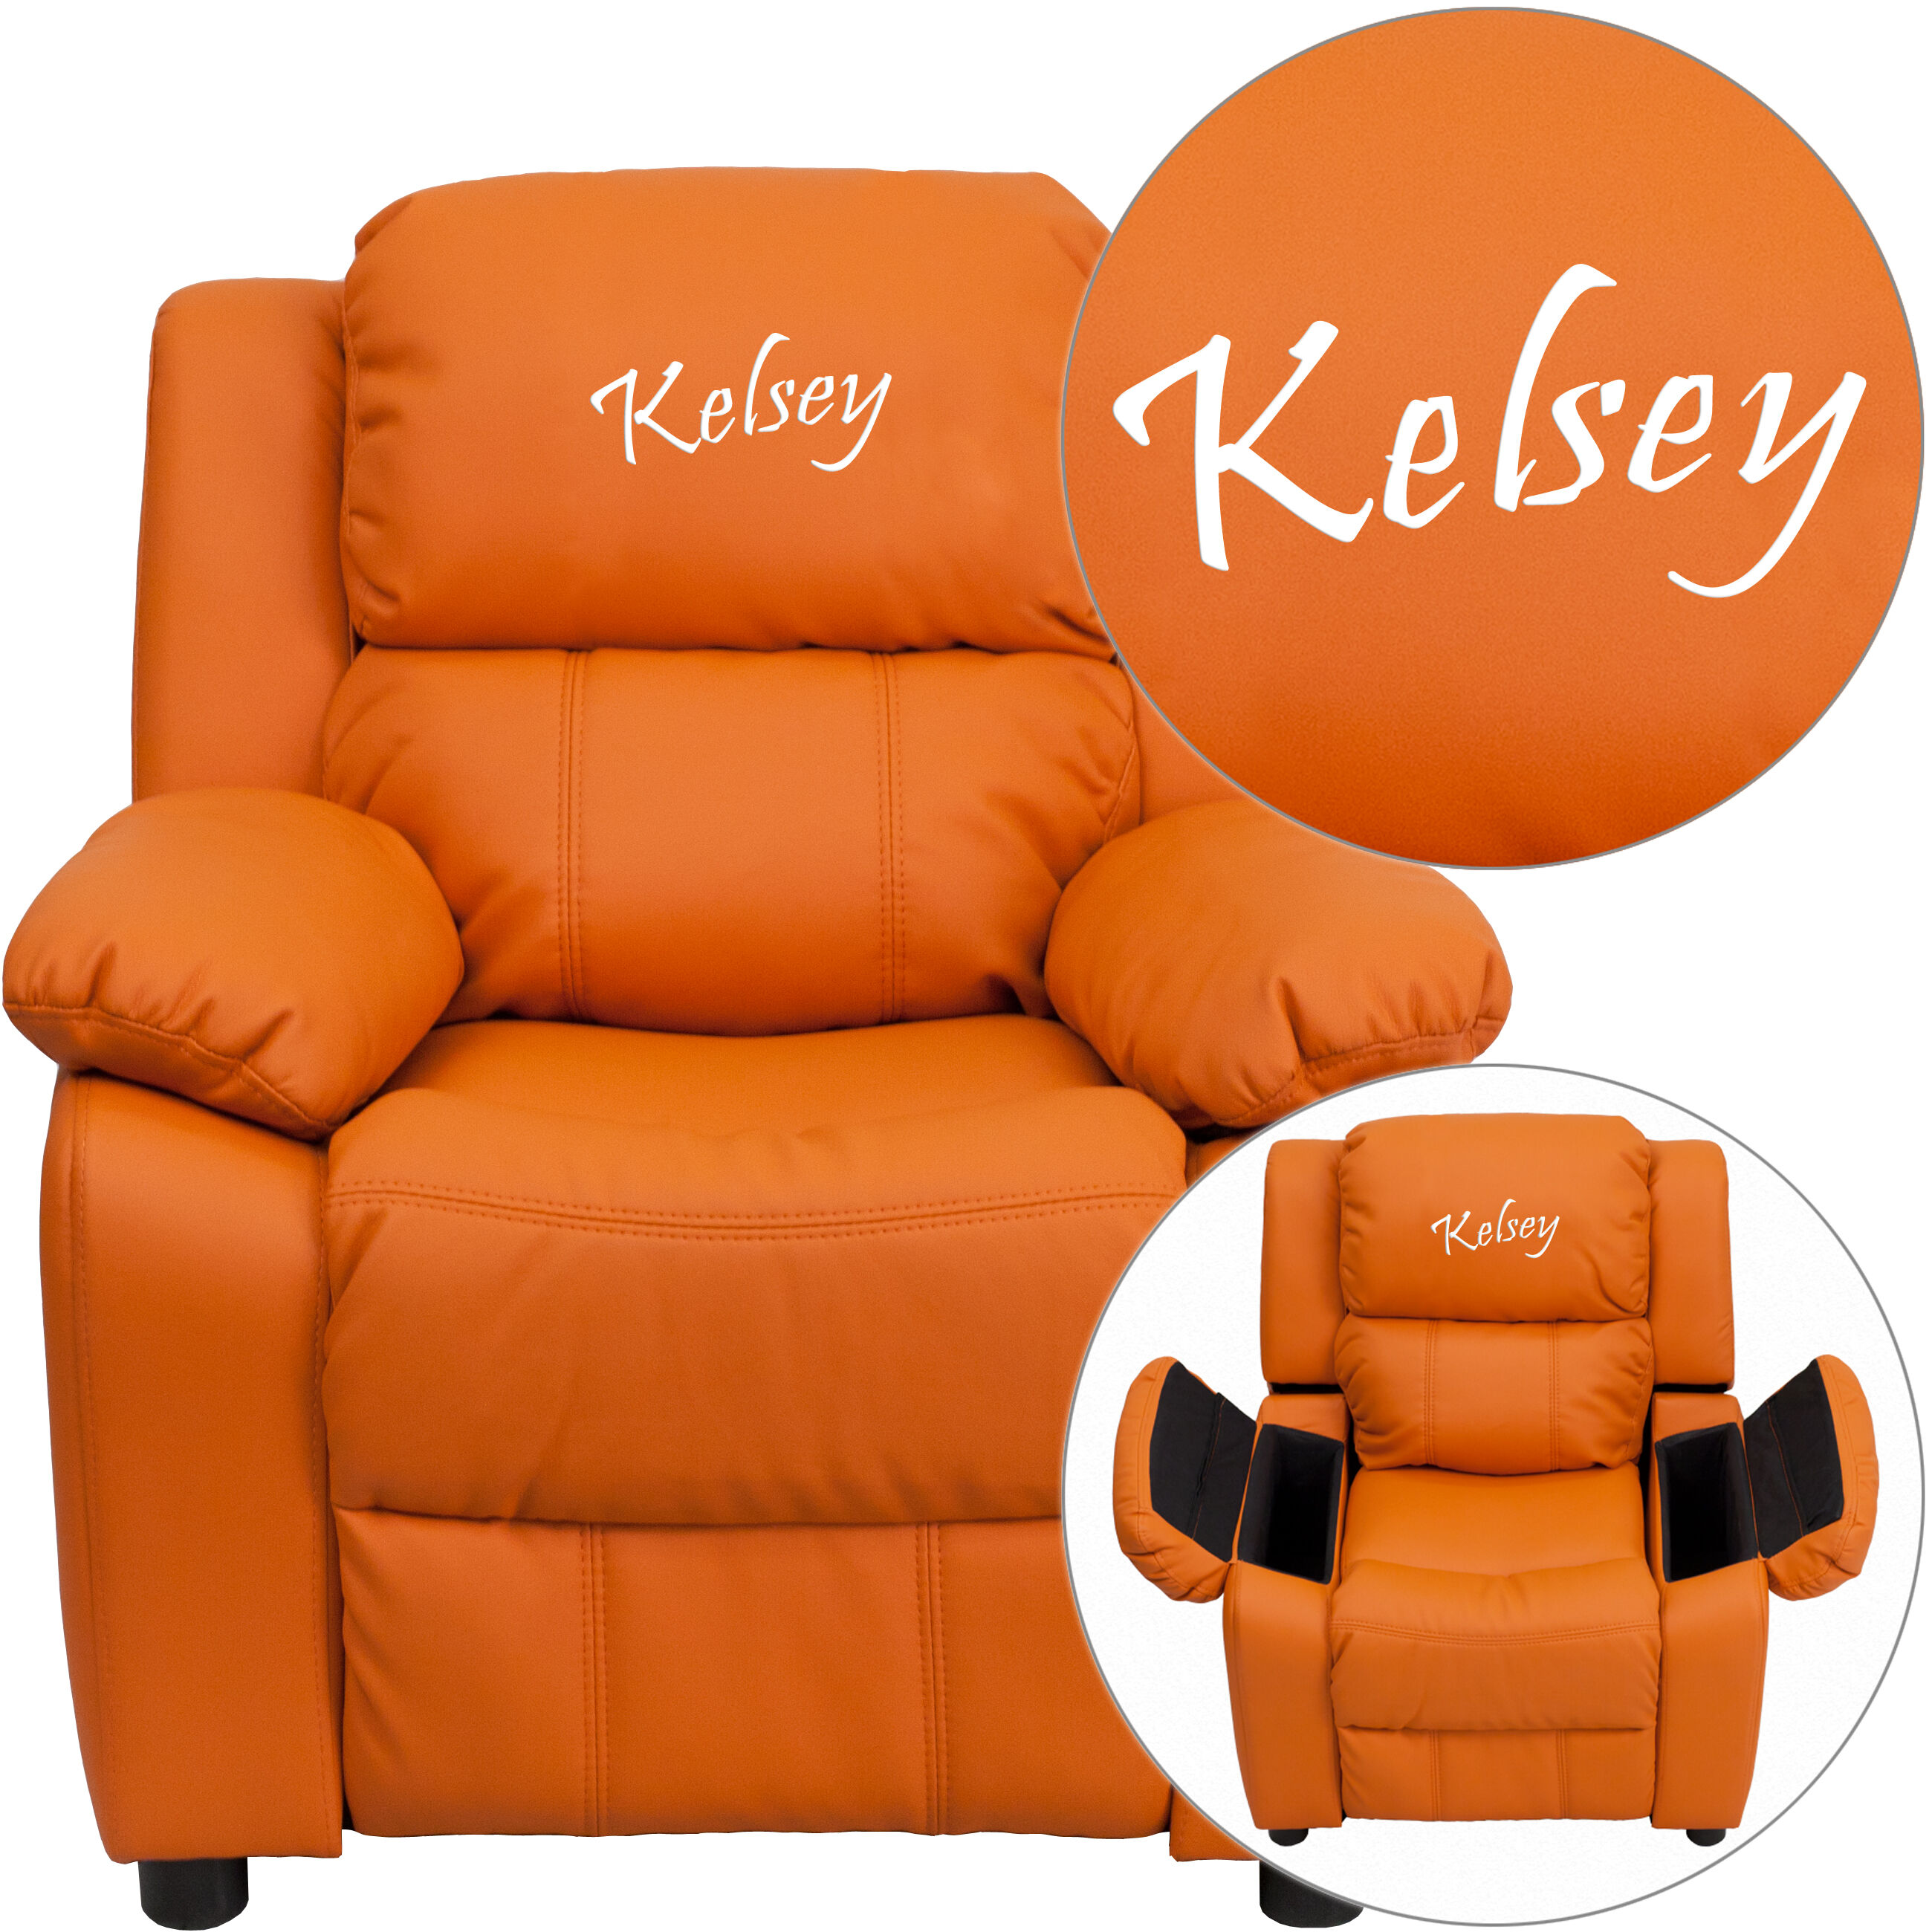 Personalized Deluxe Padded Orange Vinyl Kids Recliner with Storage Arms  sc 1 st  Bizchair.com & Personalized Kids Recliners at low budget prices | Bizchair.com islam-shia.org